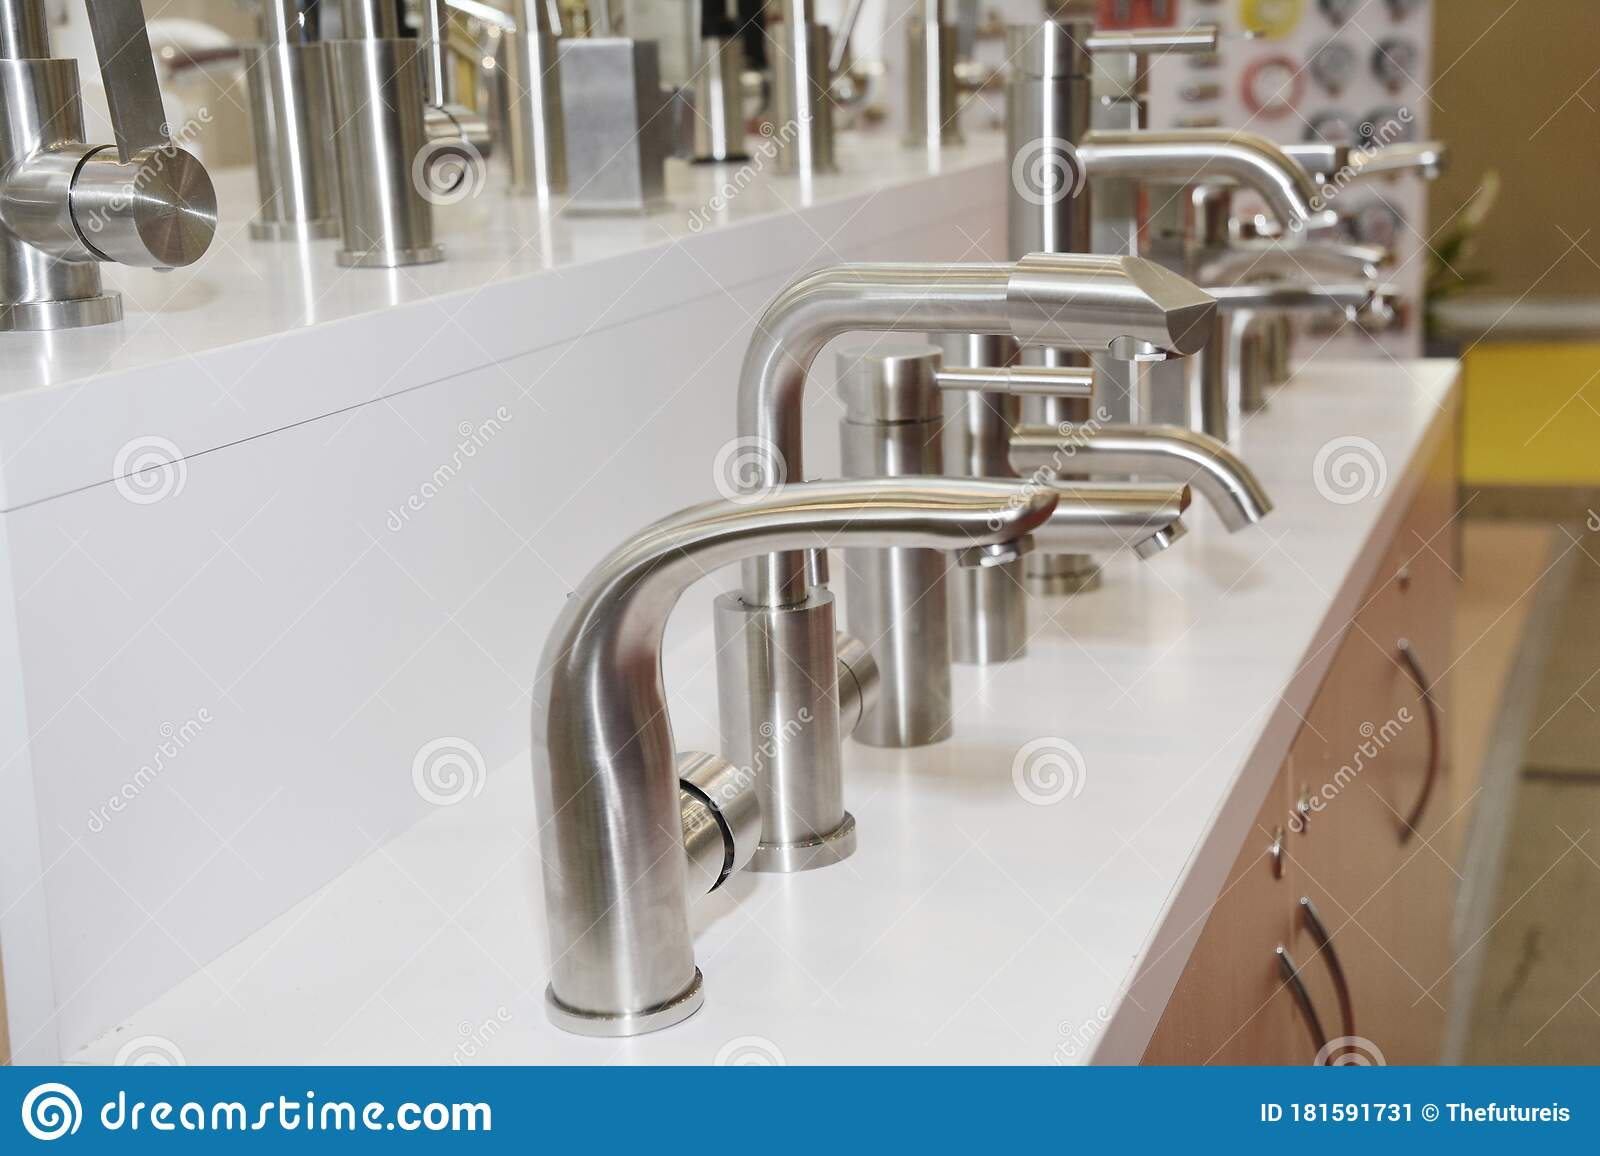 Display Of Water Saving Stainless Steel And Chrome Kitchen Sink Faucets Water Taps In A Shop Stock Image Image Of Metal Sale 181591731